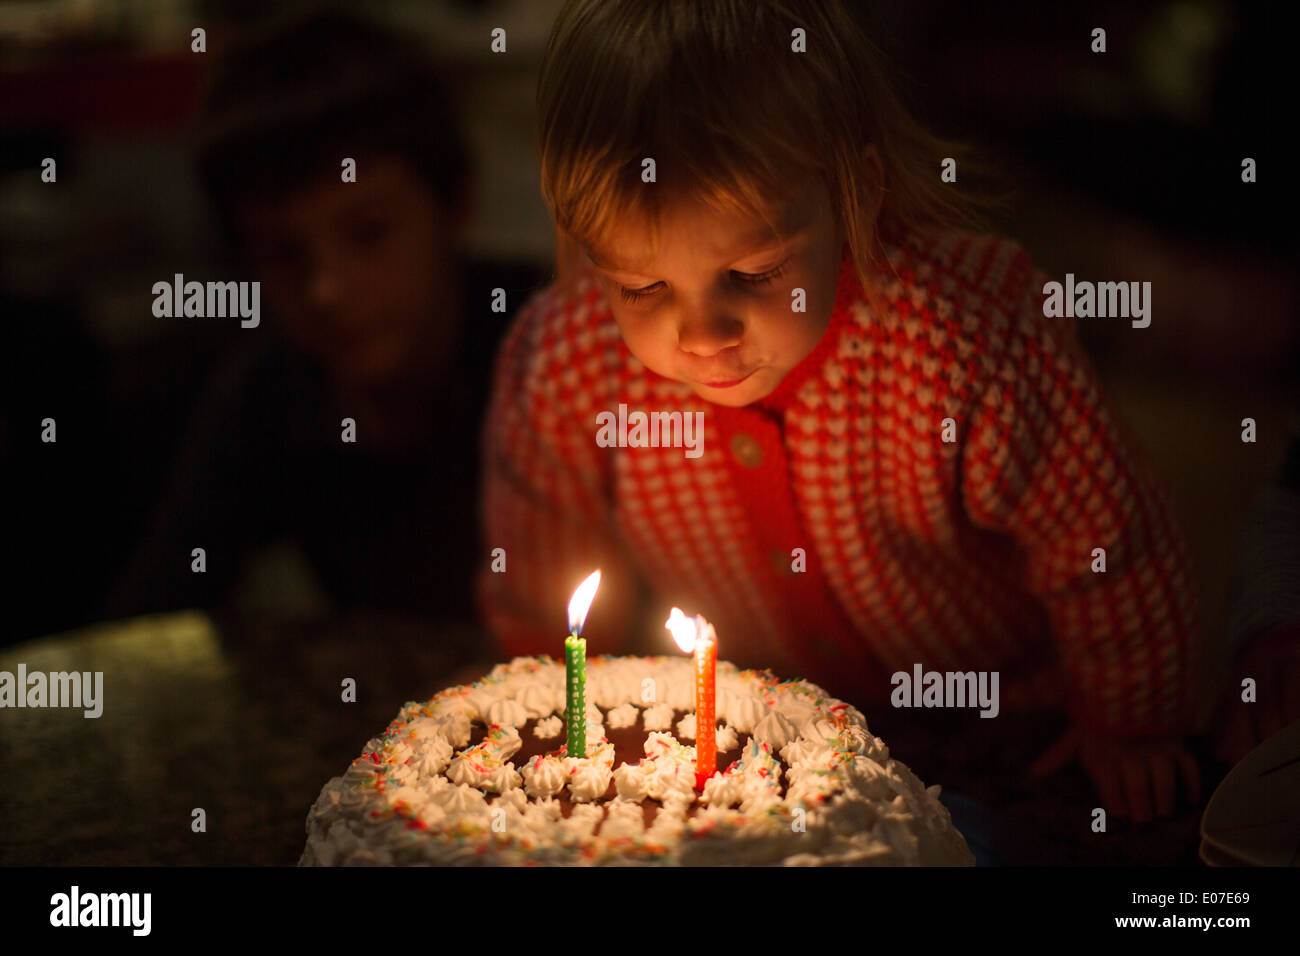 Little girl blowing out birthday candles on cake - Stock Image